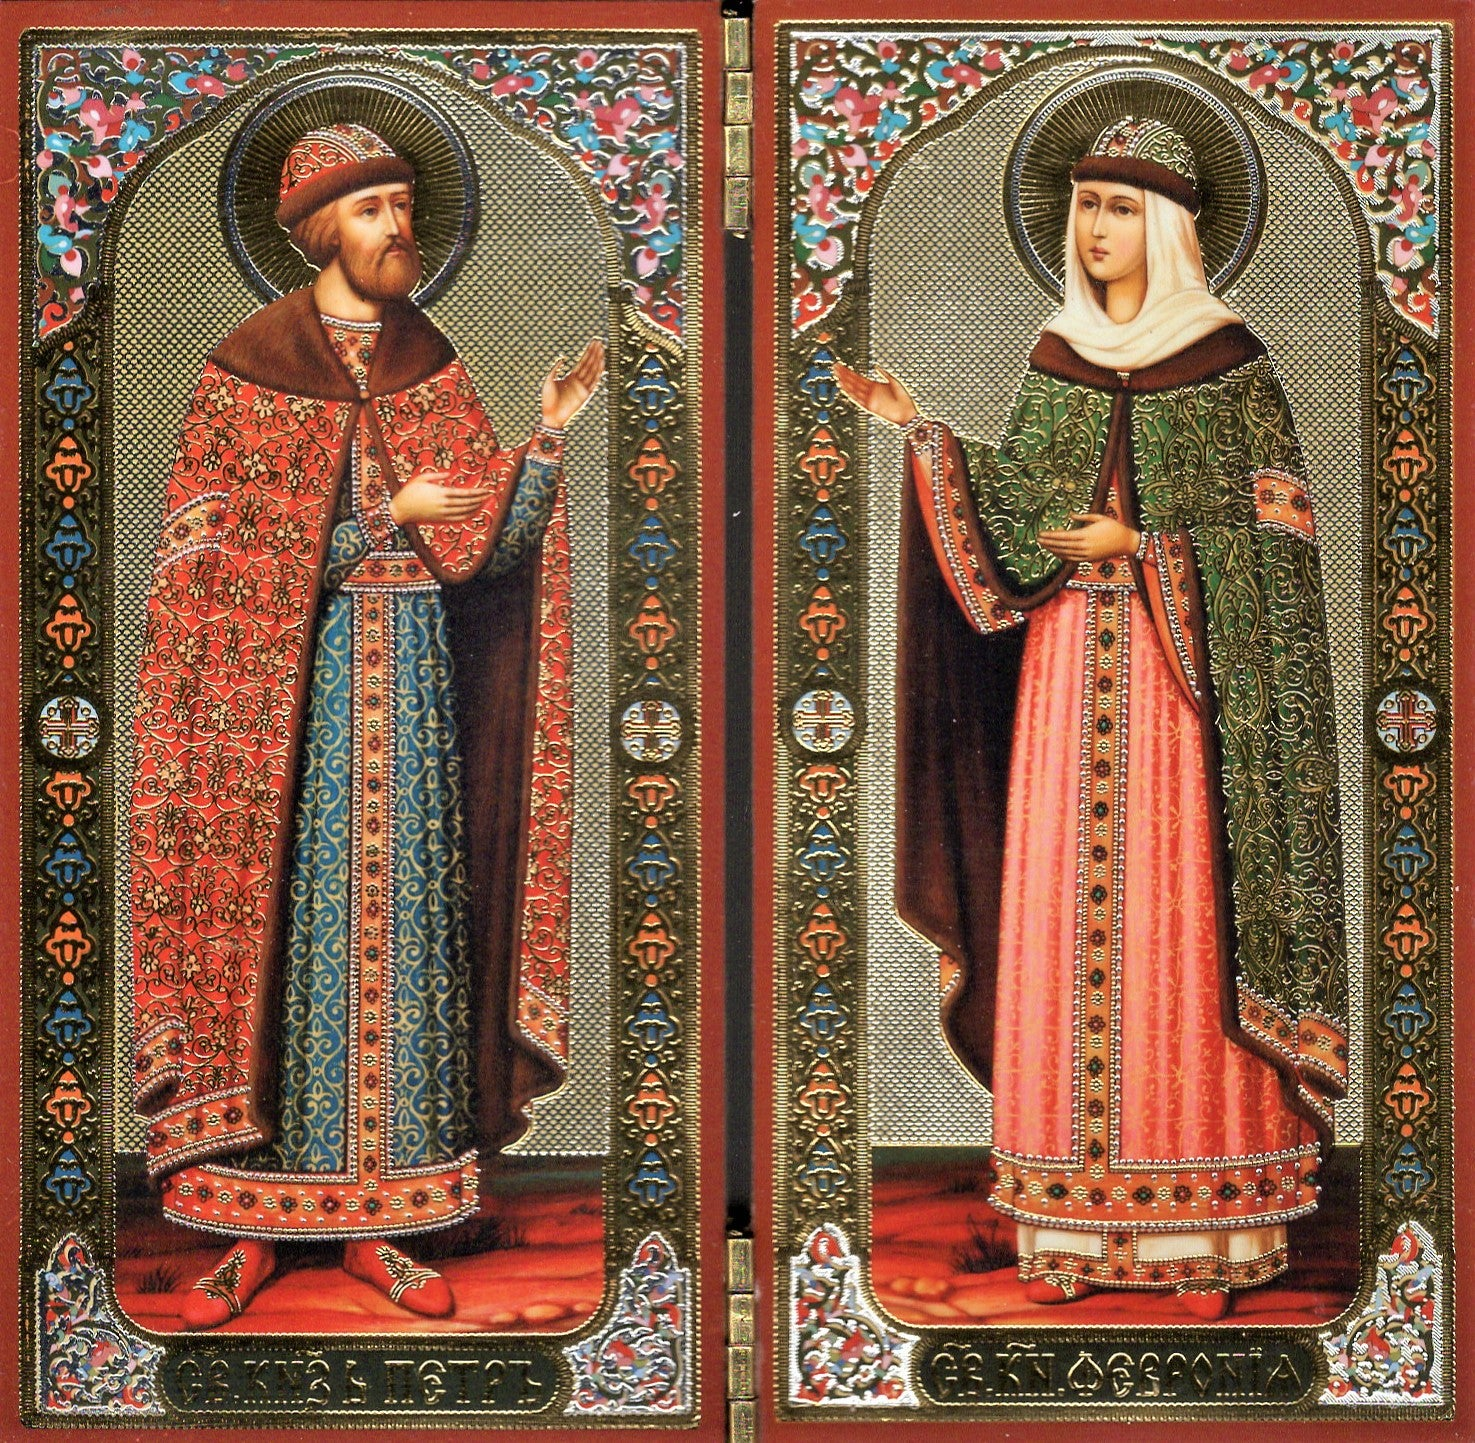 5 lessons of love from saints Peter and Fevronia